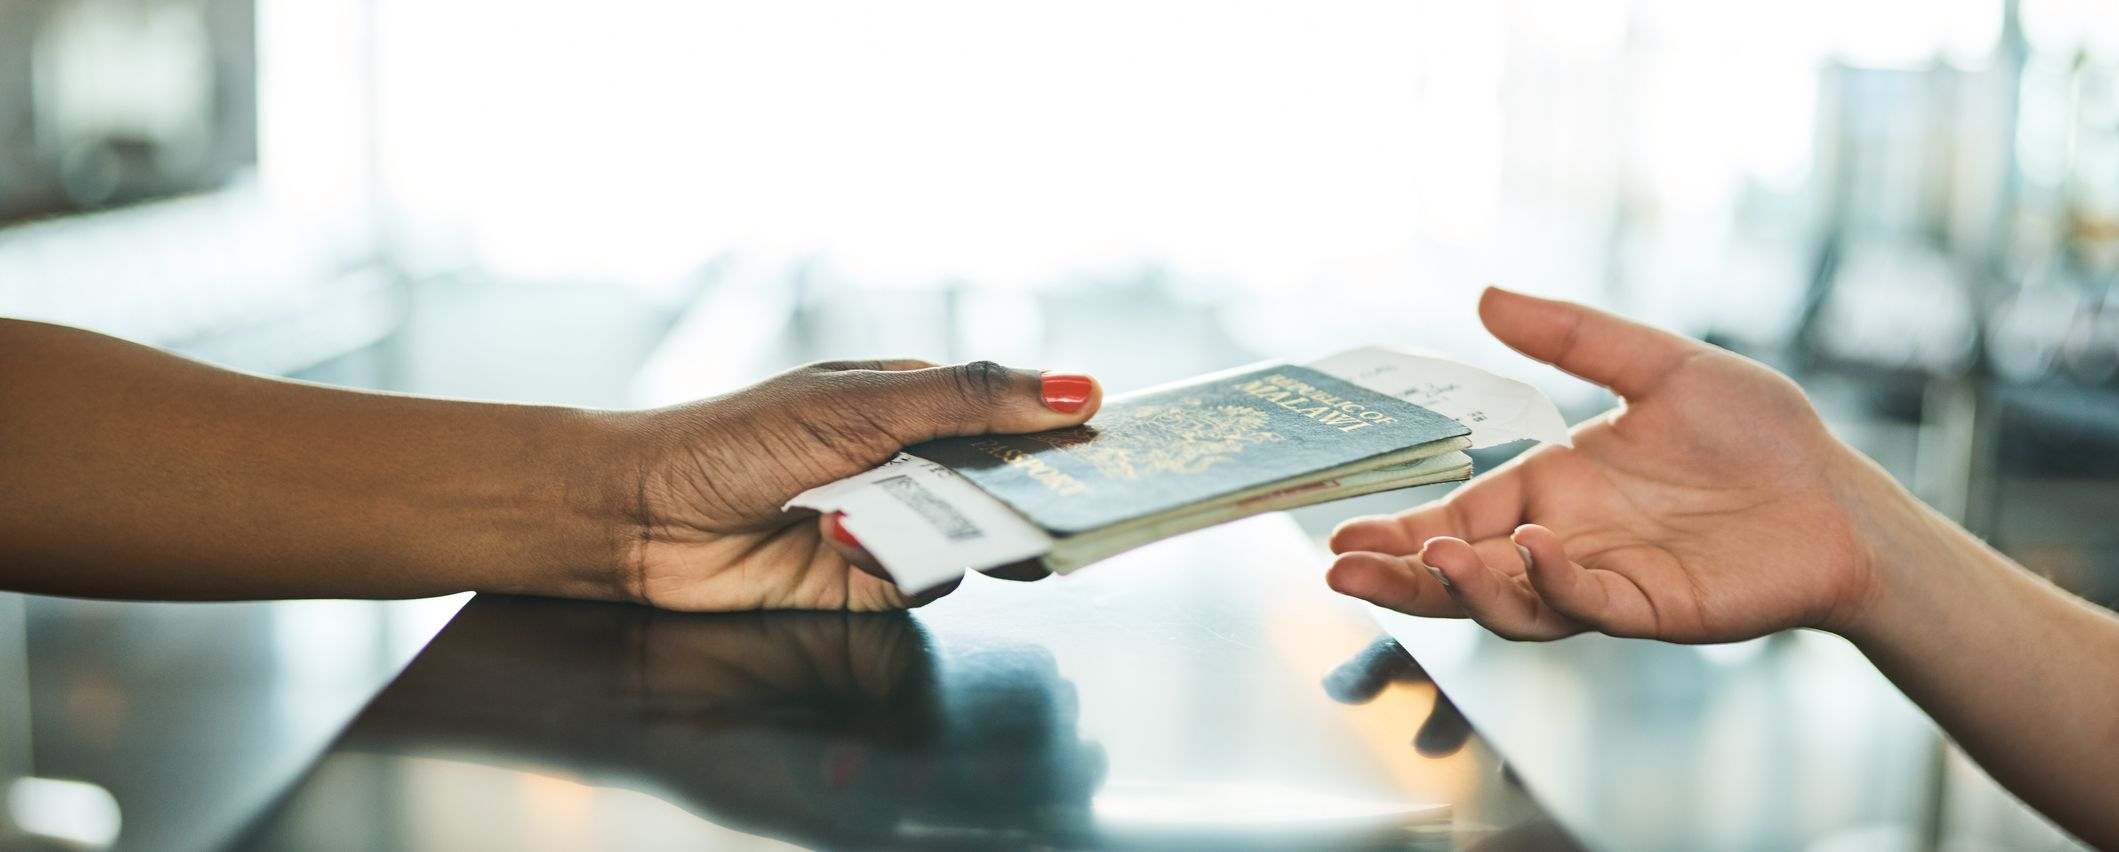 Cropped shot of an unrecognizable woman handing over her ID book at a boarding gate in an airport